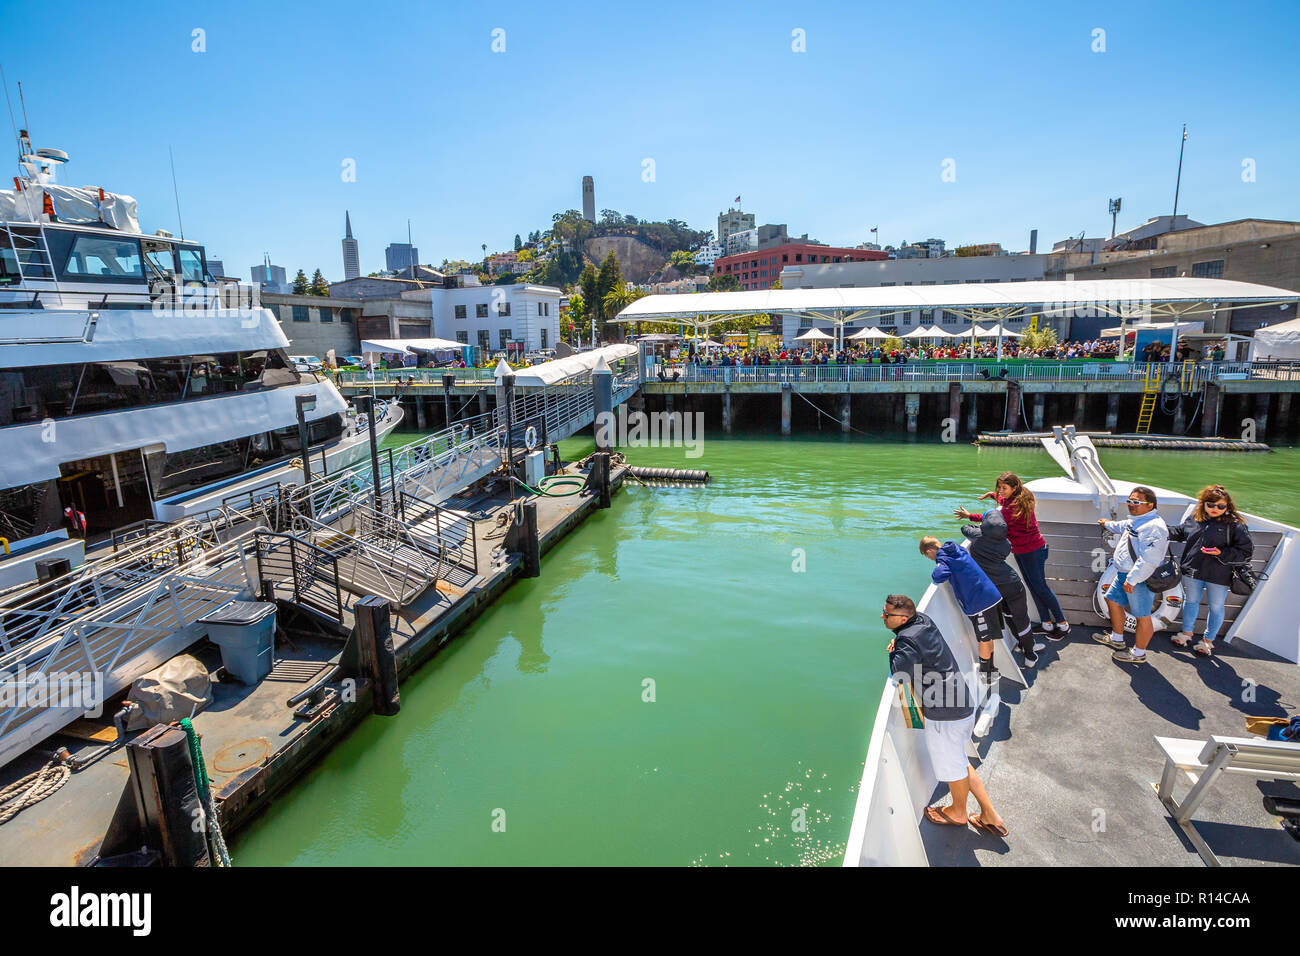 San Francisco, California, United States - August 14, 2016: Alcatraz Flayer cruise in pier 33 with tourists. San Francisco skyline on background. Blue sky. - Stock Image